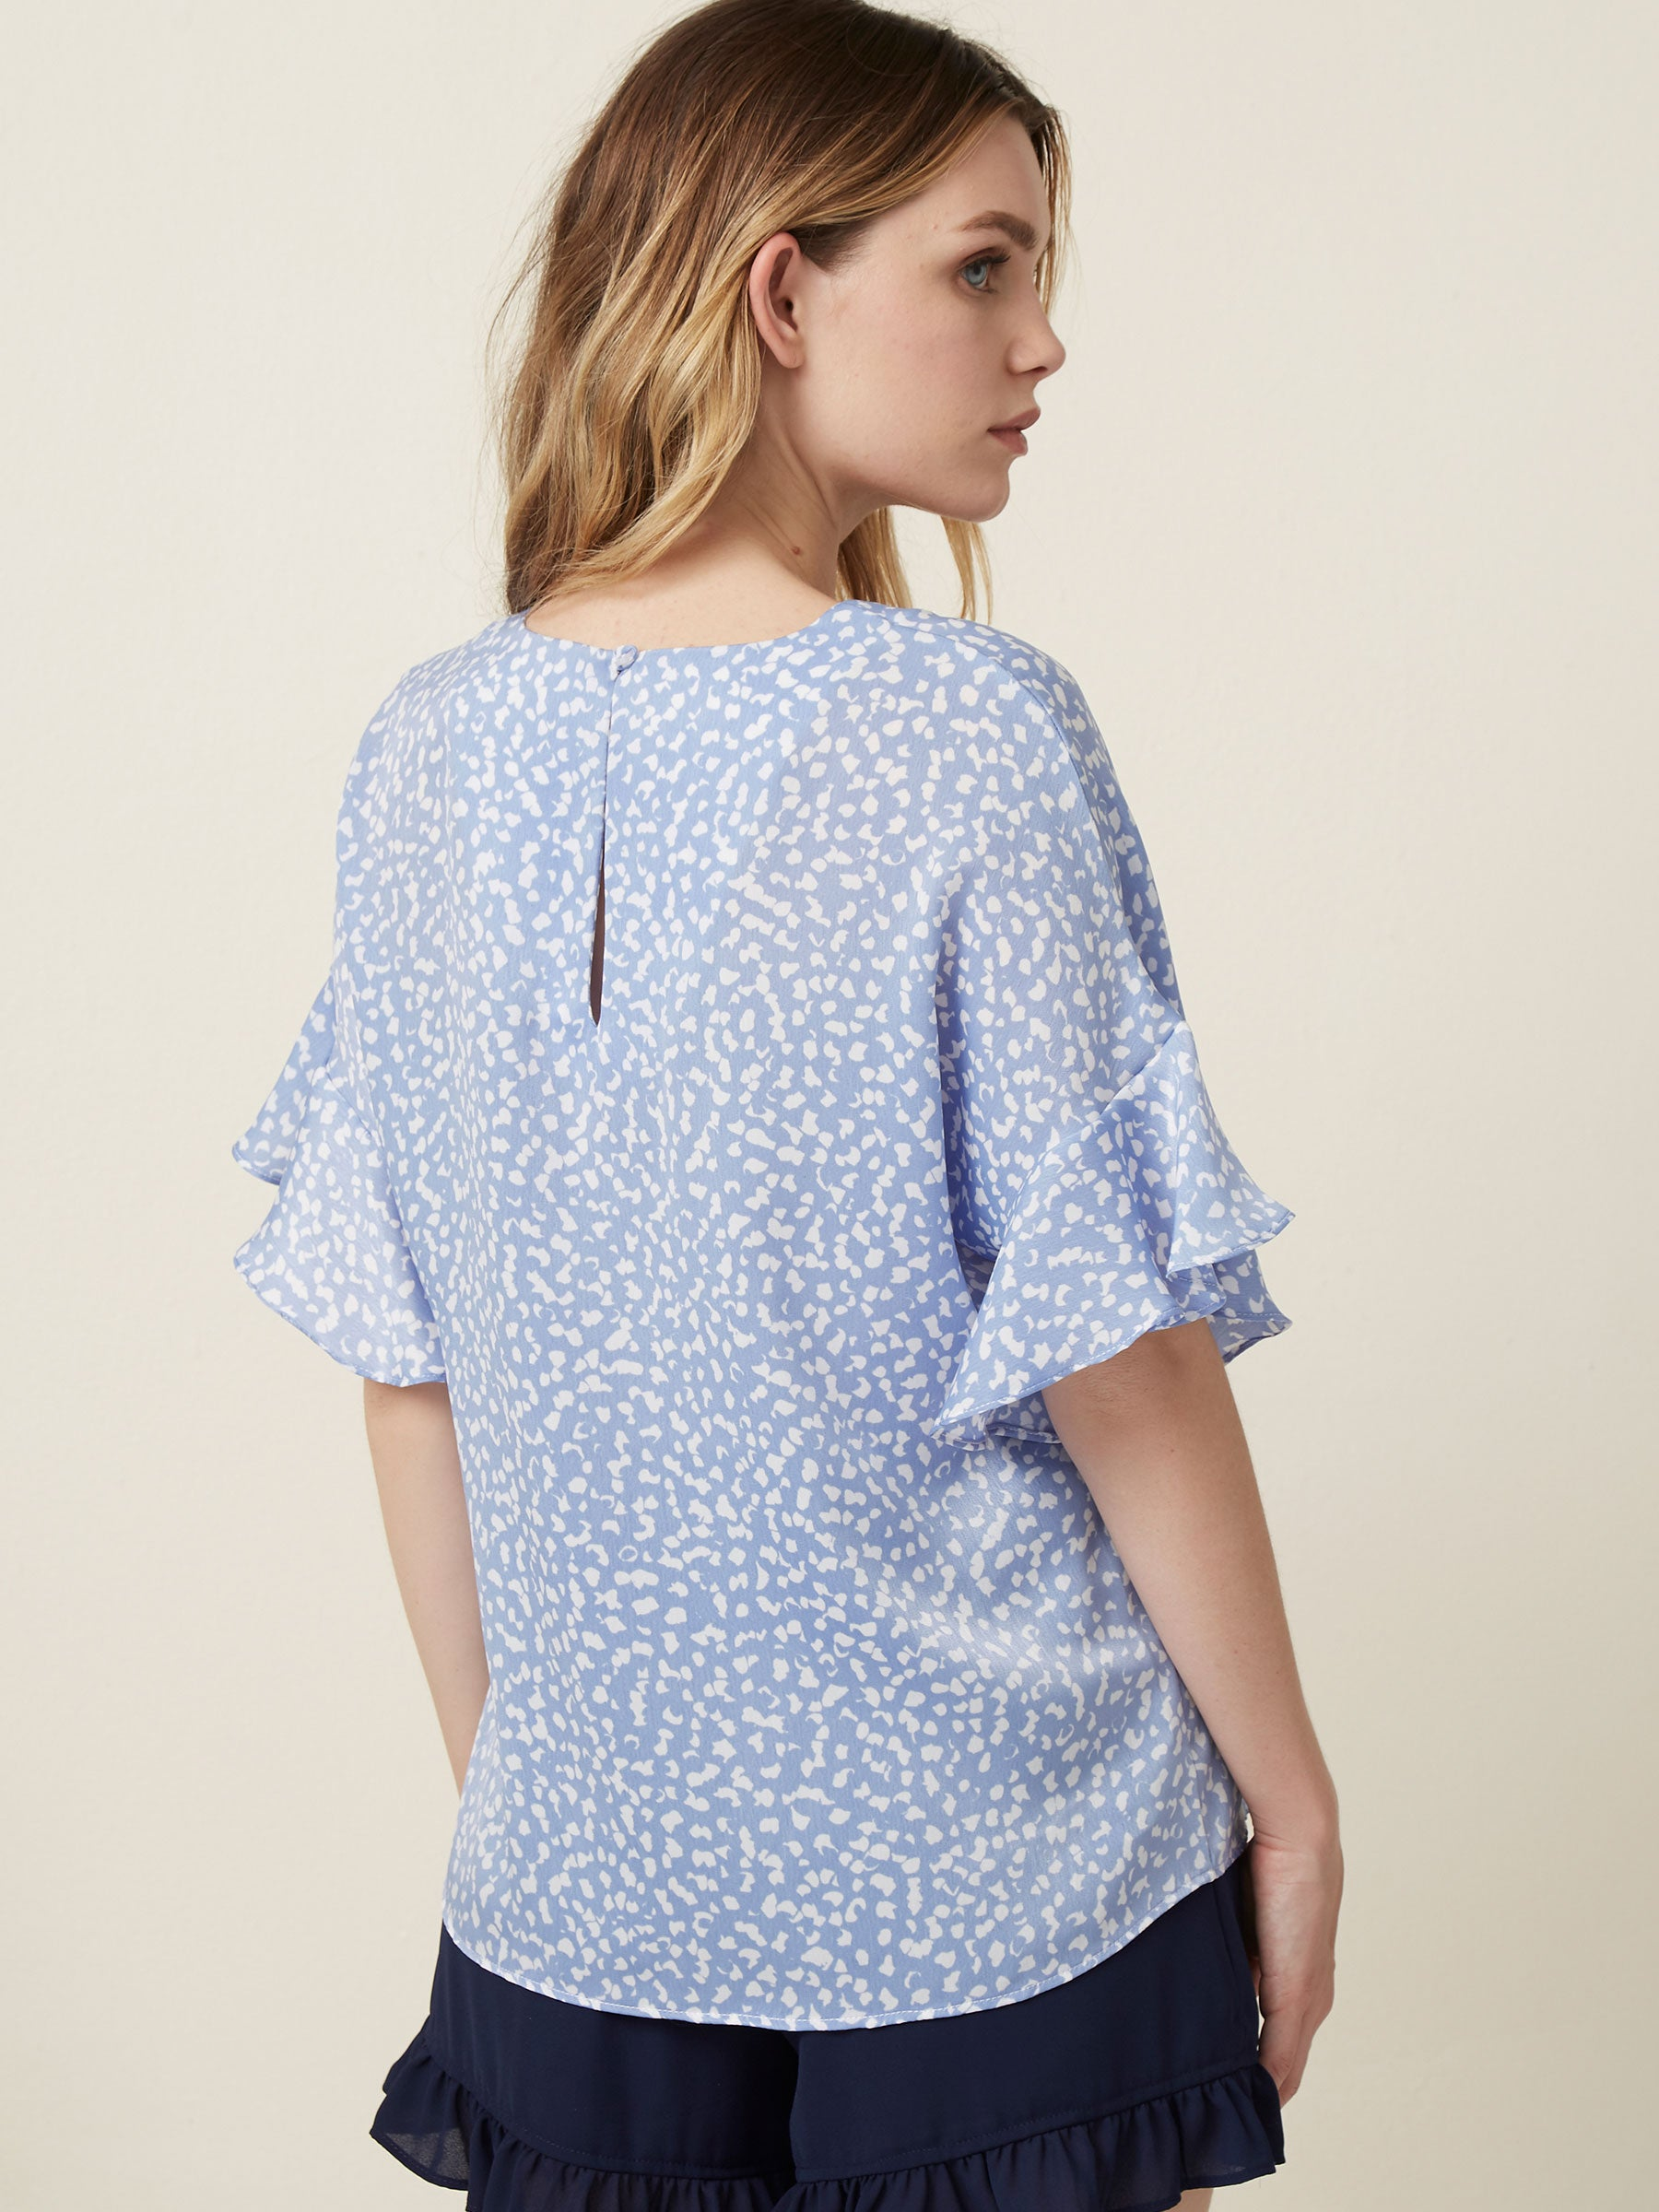 """Tops tee shirt  Ruffle sleeves  Printed tops Abstract prints  Blue tops """